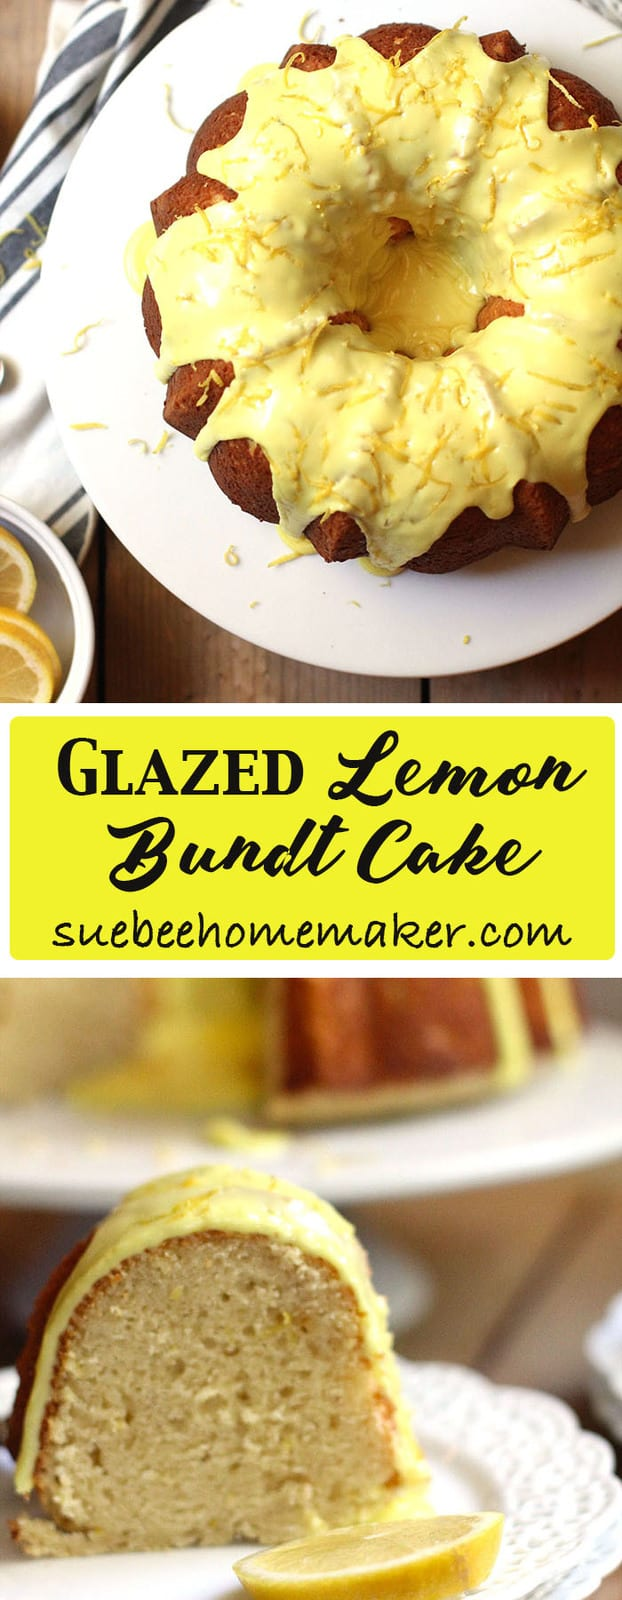 Glazed Lemon Bundt Cake is the perfect way to welcome Spring. You need FOUR fresh lemons for this cake, and you'll know why when you take a bite. So good! | suebeehomemaker.com